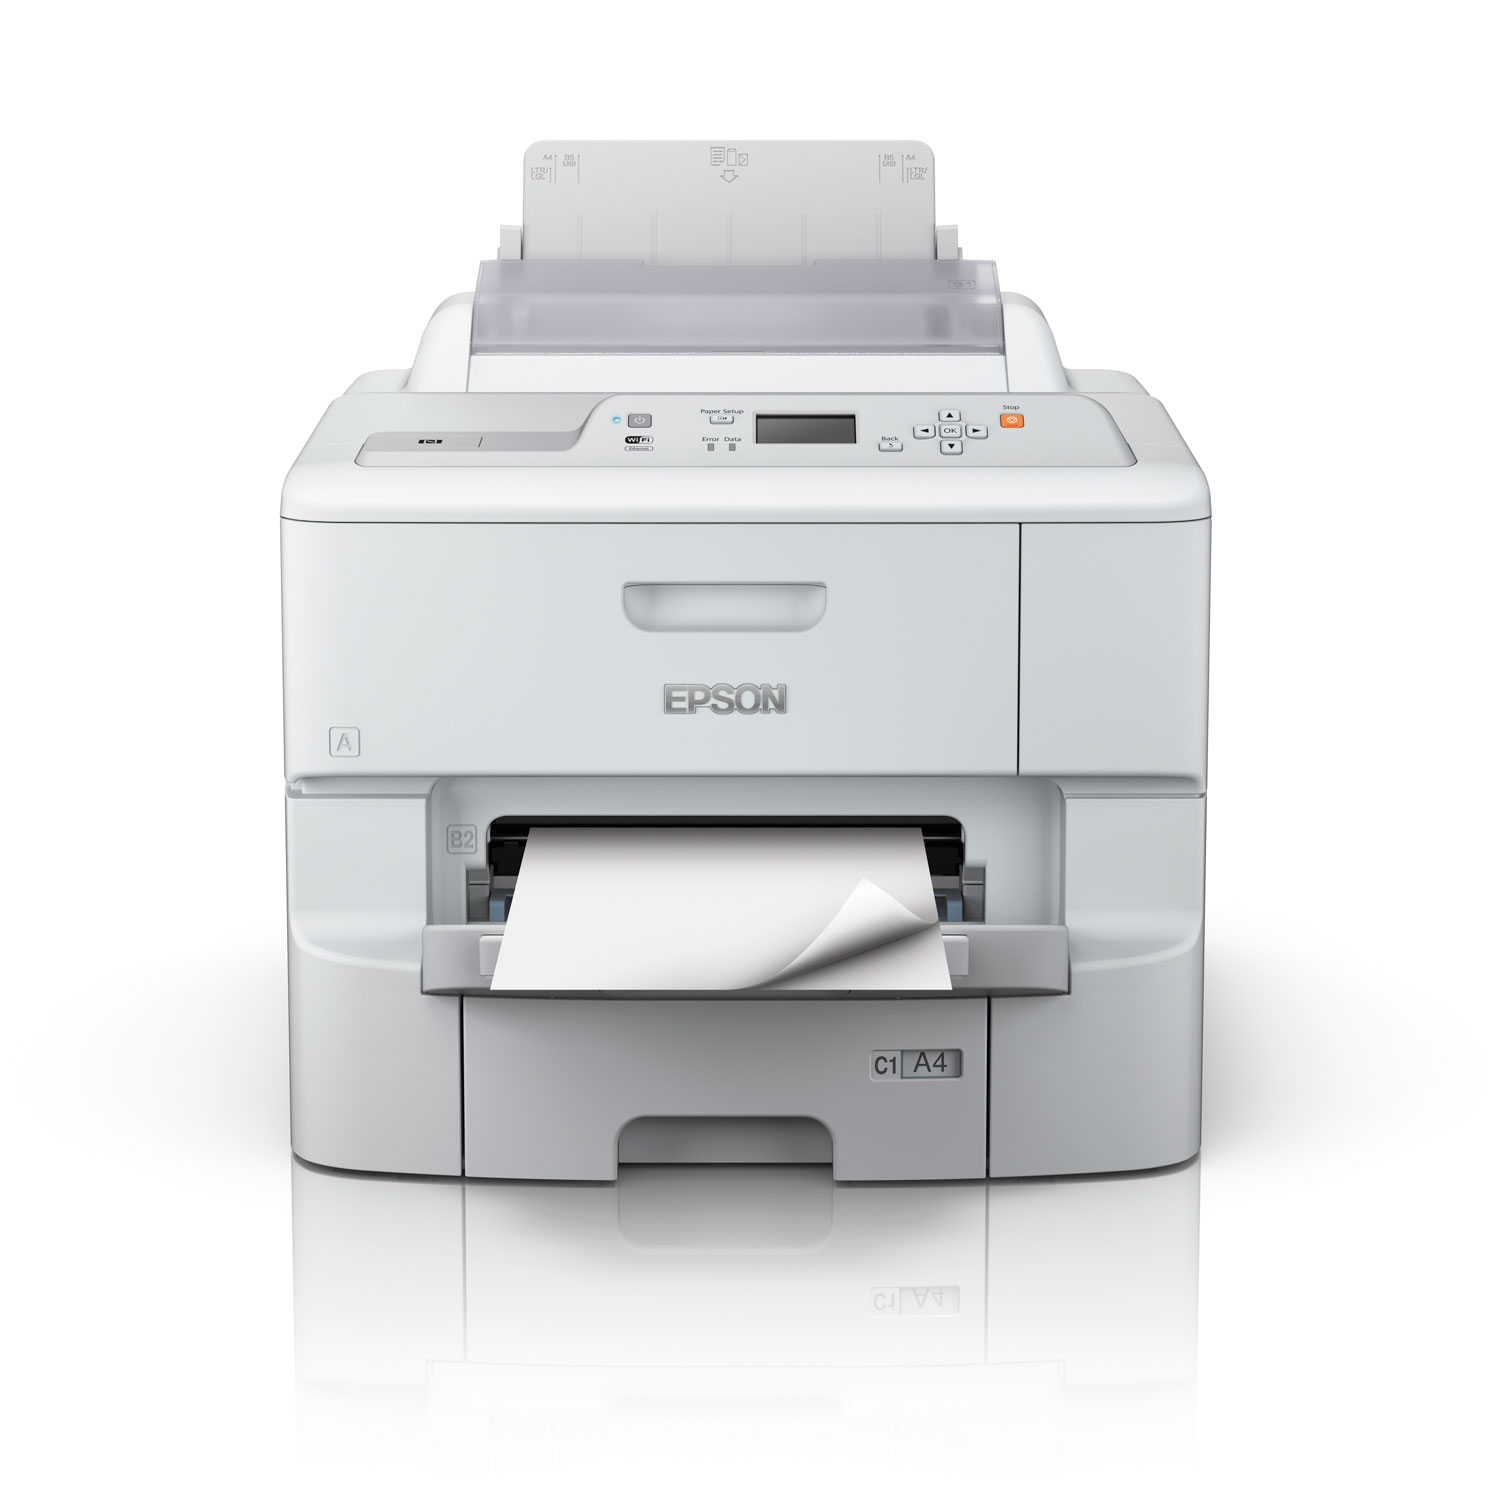 Epson WorkForce Pro WF-6090DW (C11CD47301) - Achat / Vente Imprimante sur Cybertek.fr - 0